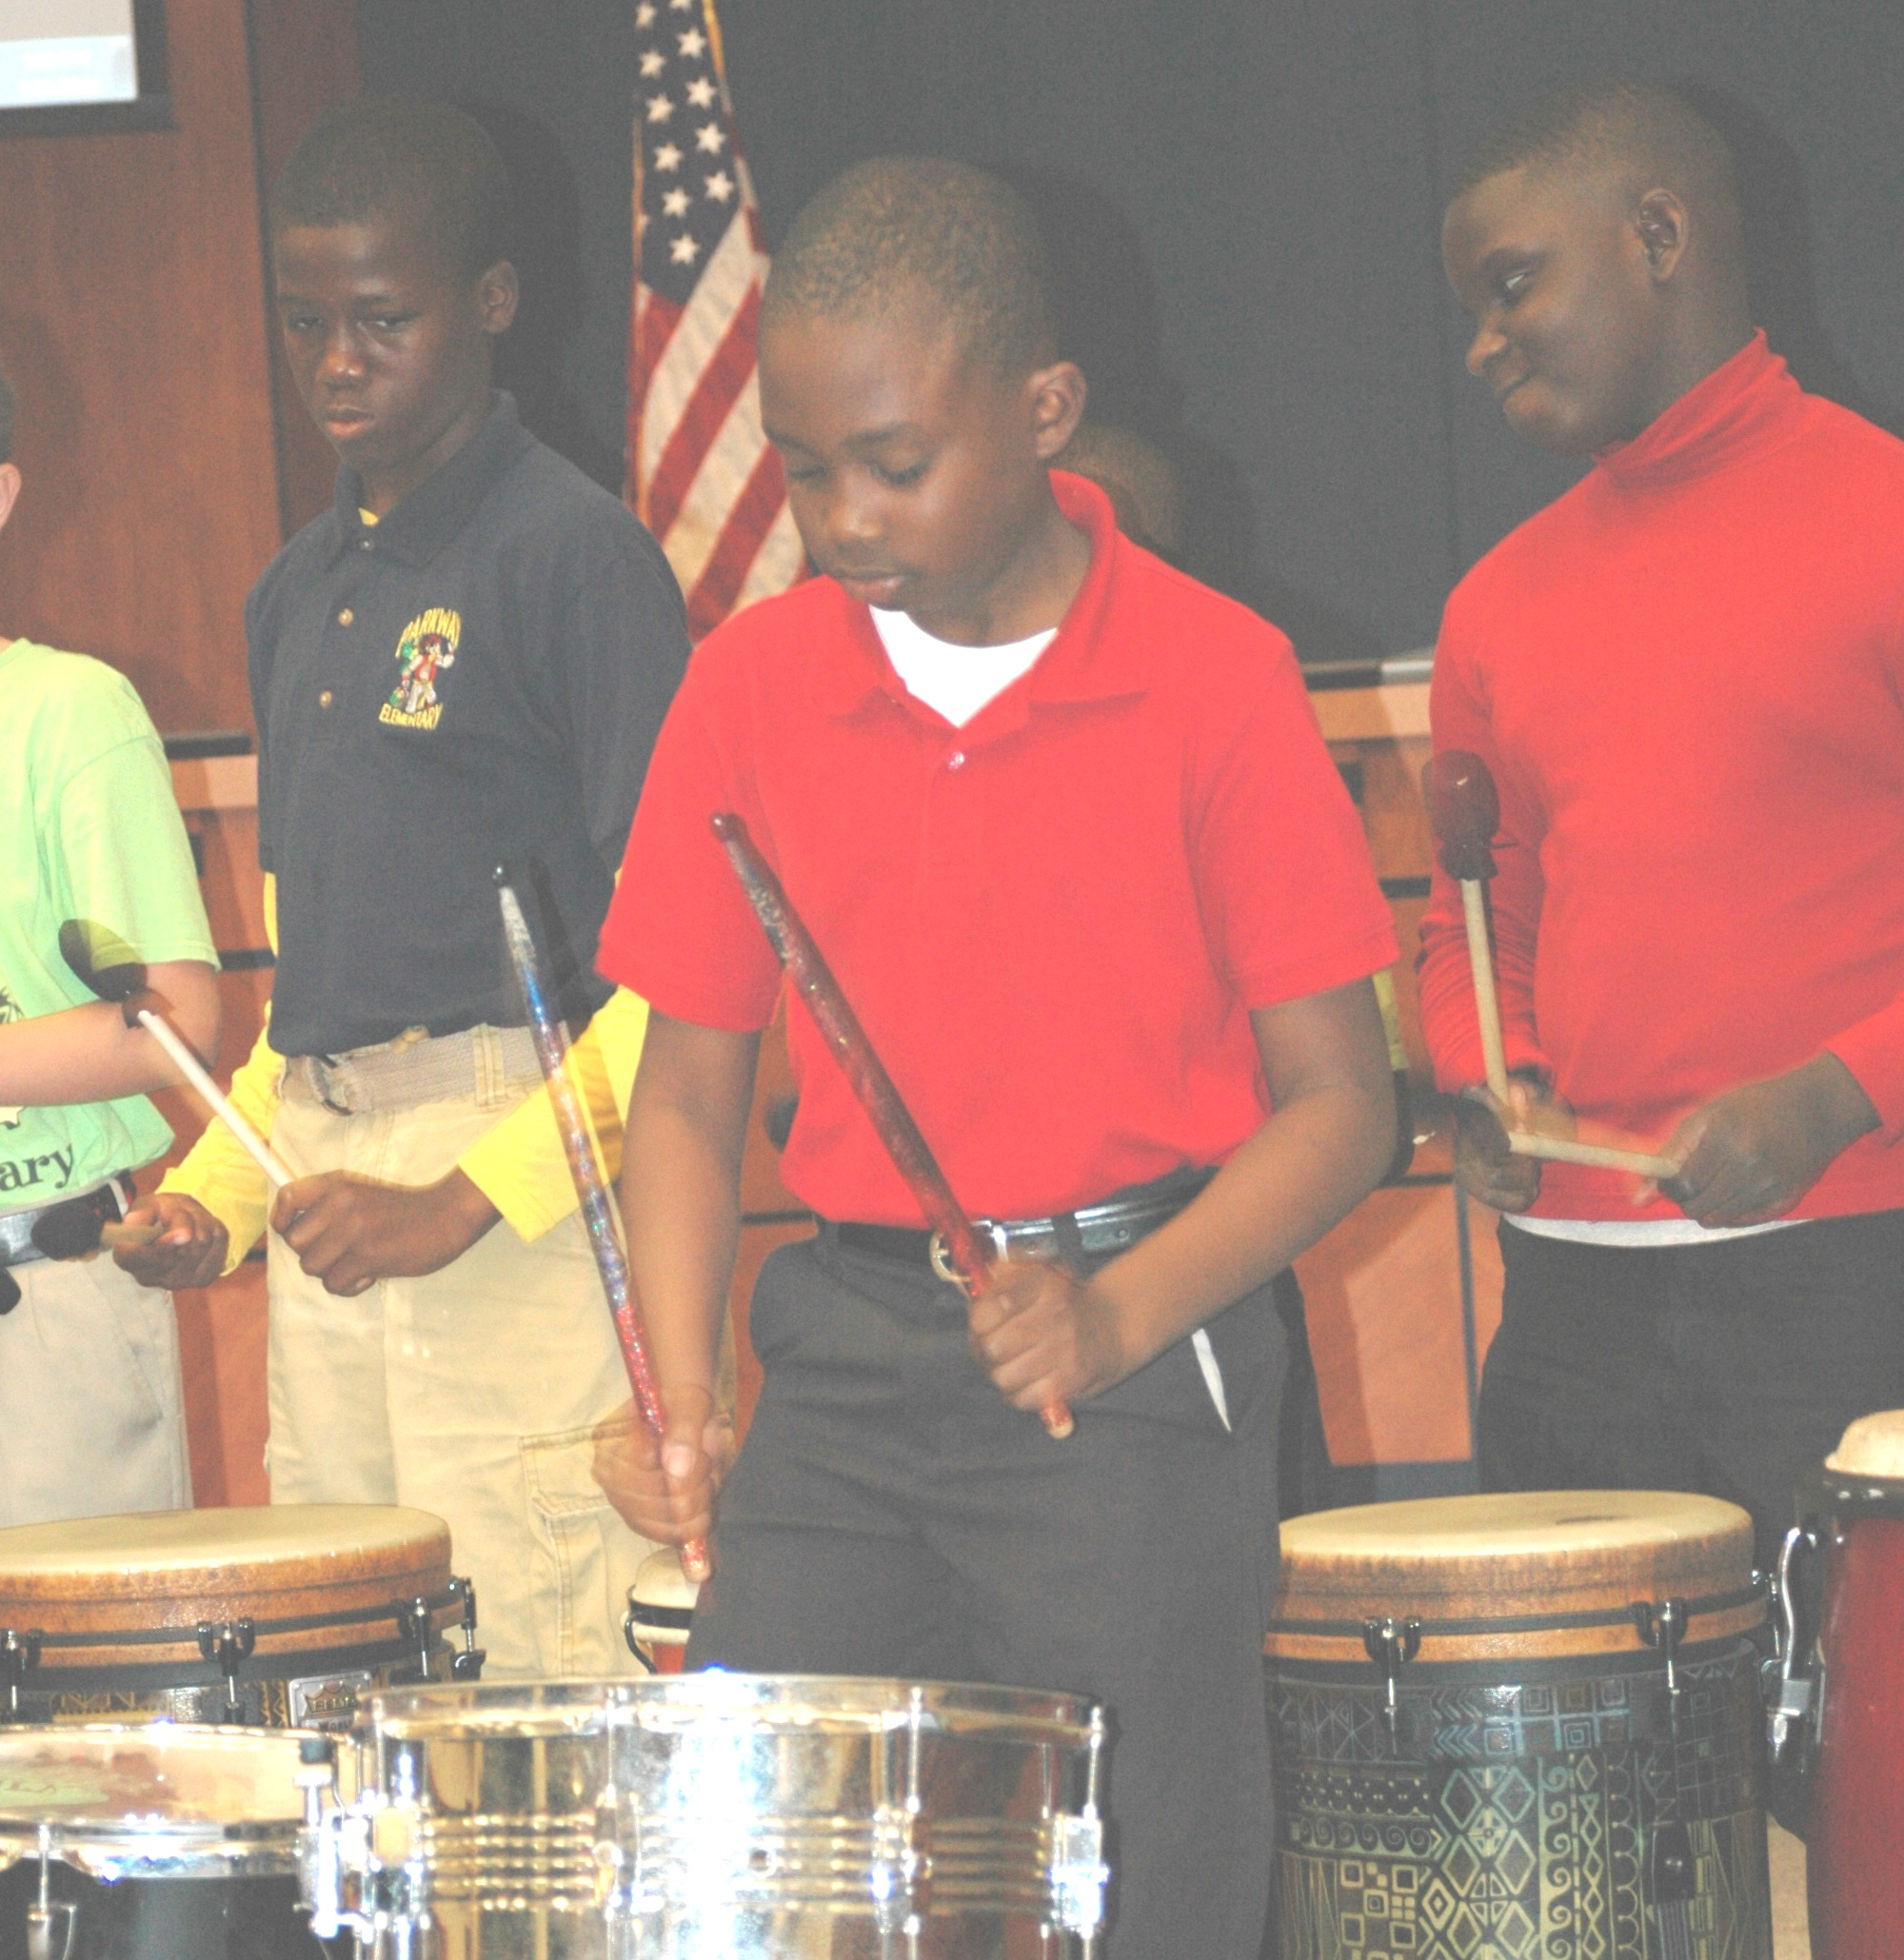 Parkway Elementary drummers present original rhythm at school board meeting